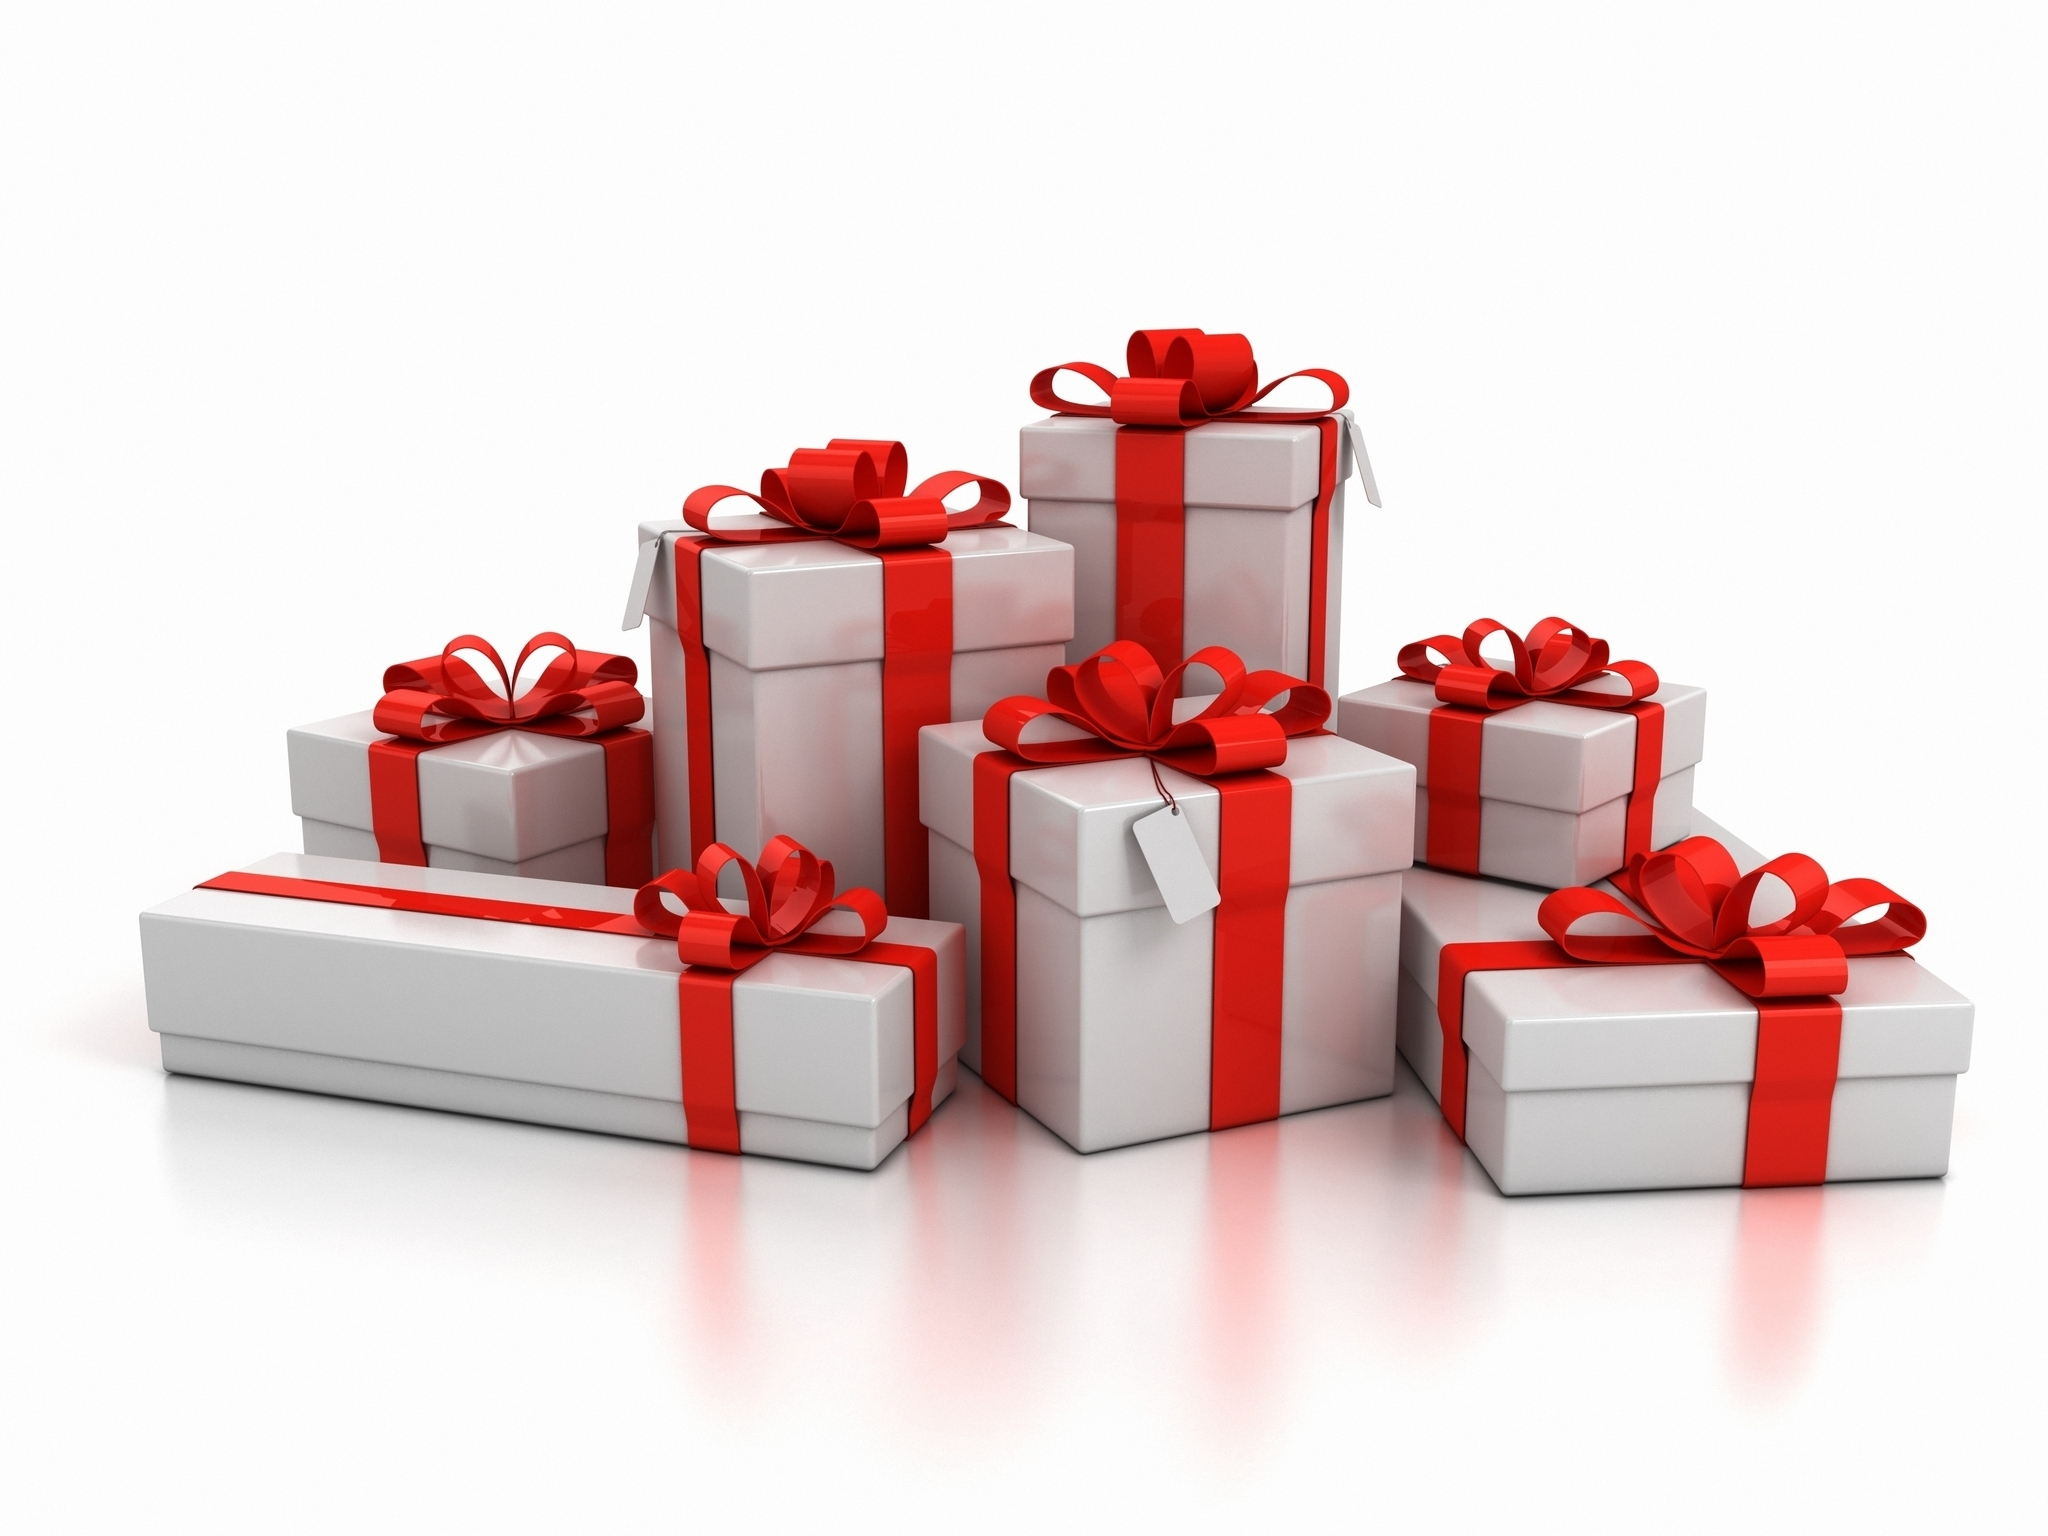 gift boxes over white background 3d illustration